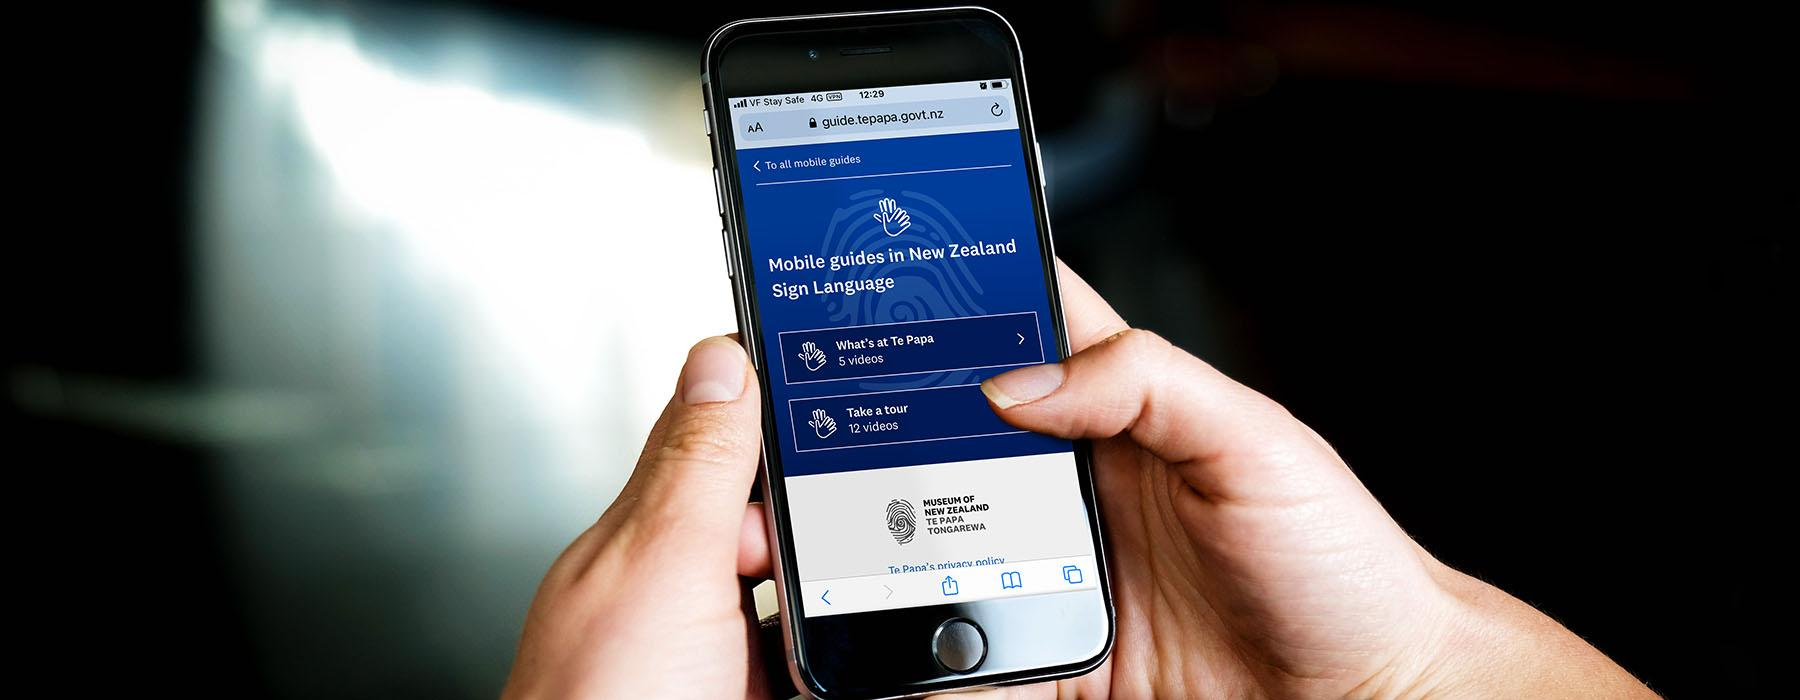 Closeup of hands holding a mobile phone which is displaying the NZSL mobile guide